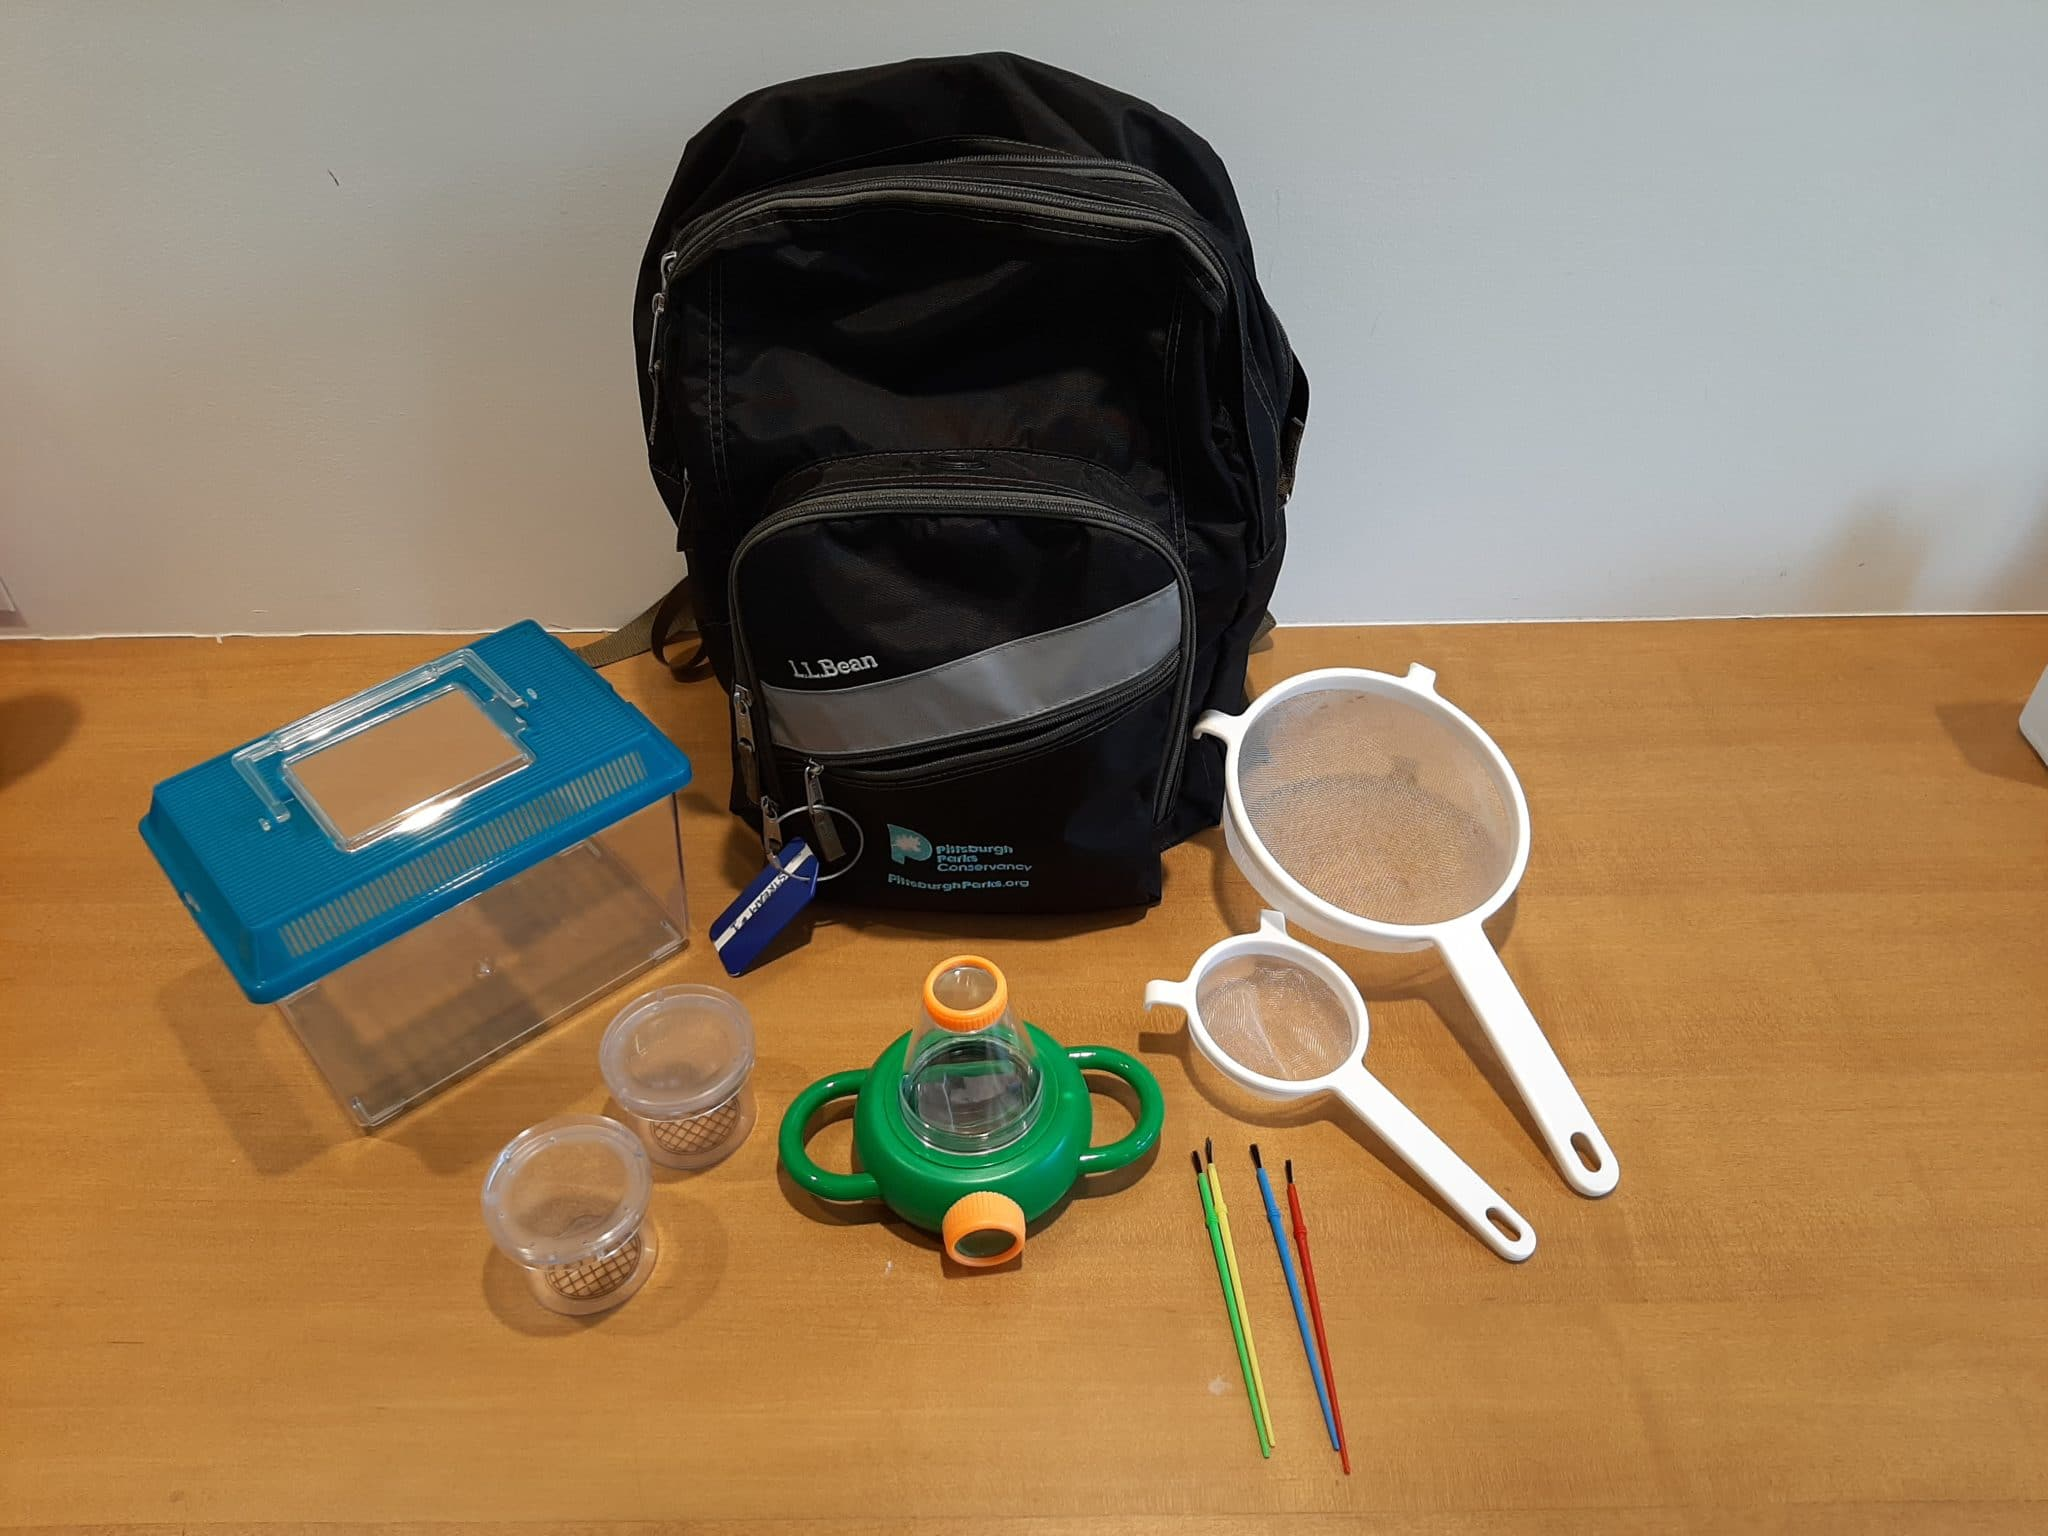 Backpack with tools for collecting insects